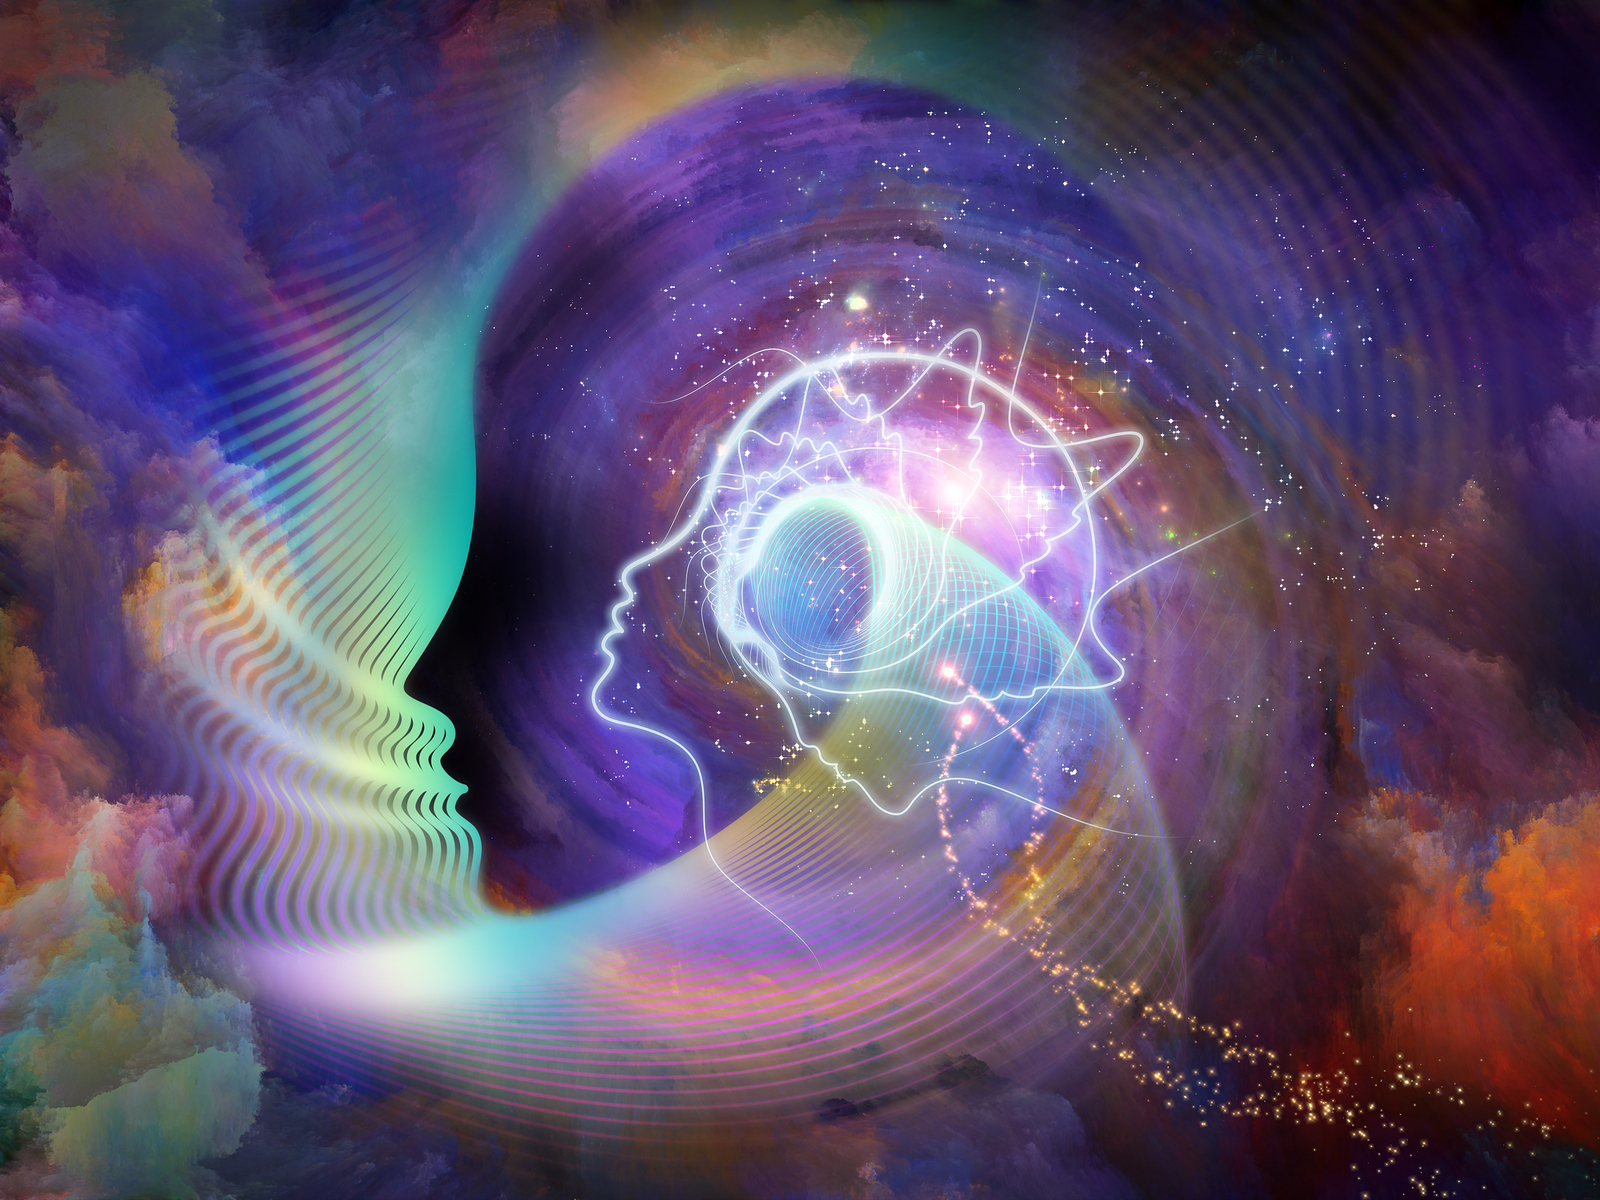 1000 Ideas About Human Soul On Pinterest: Soul Evolution: Karmic, Soulmate, Or Twin Flame